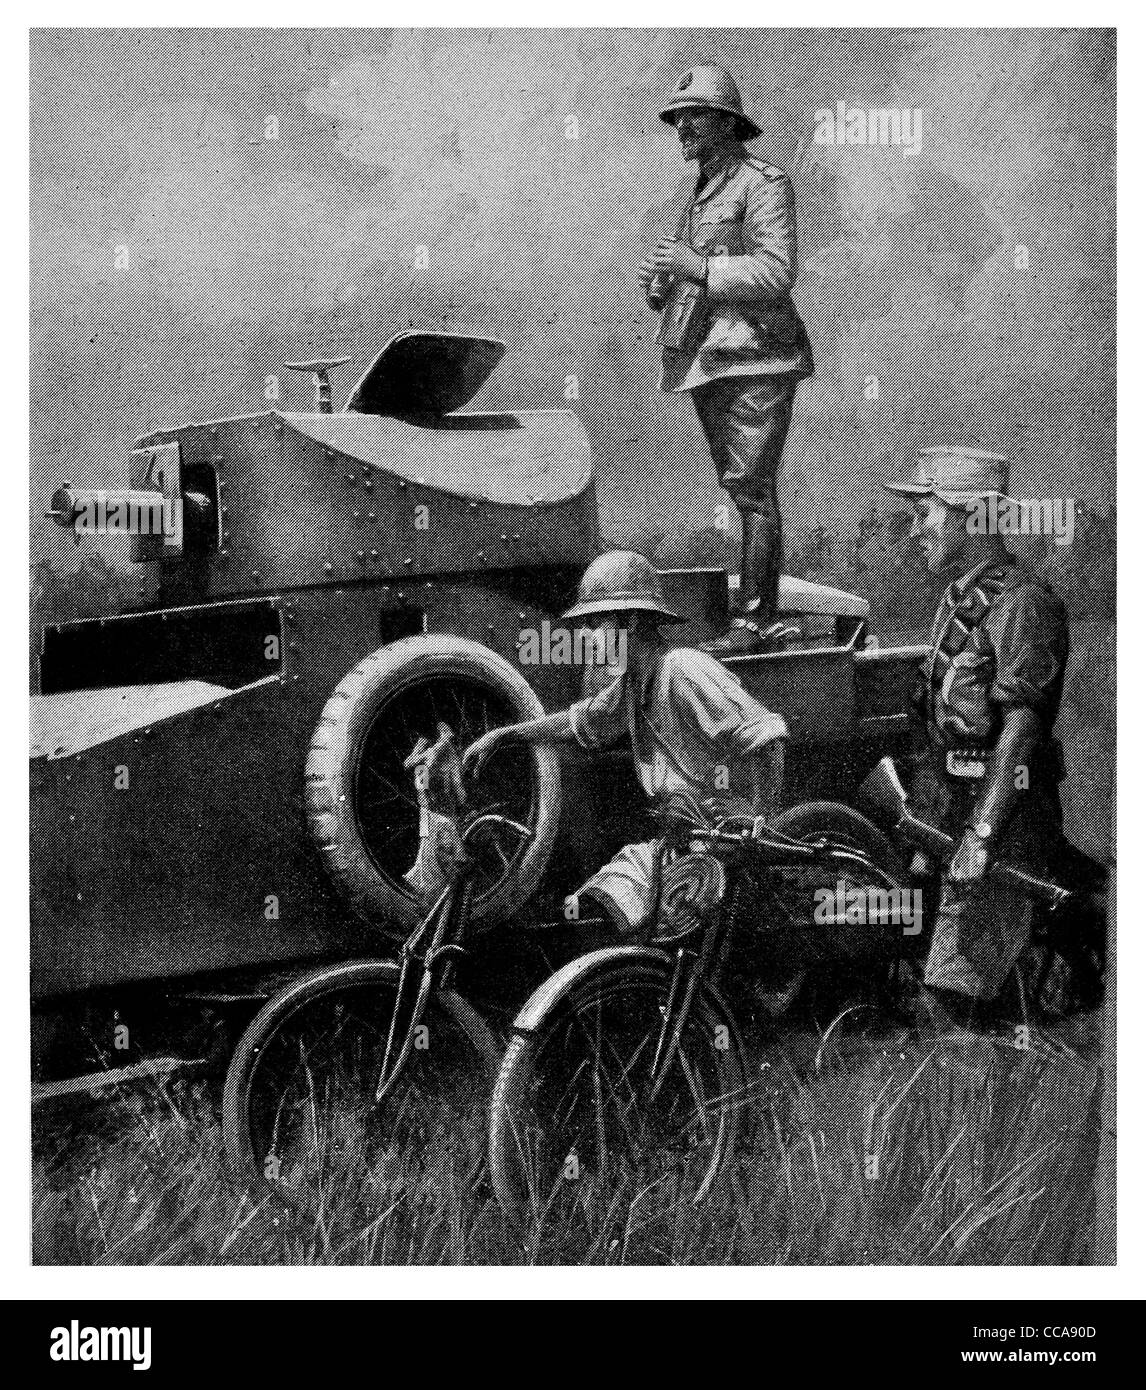 1916 East Africa General Smuts British force armoured car vehicle bicycle spare tire tank turret machine gun safari Stock Photo